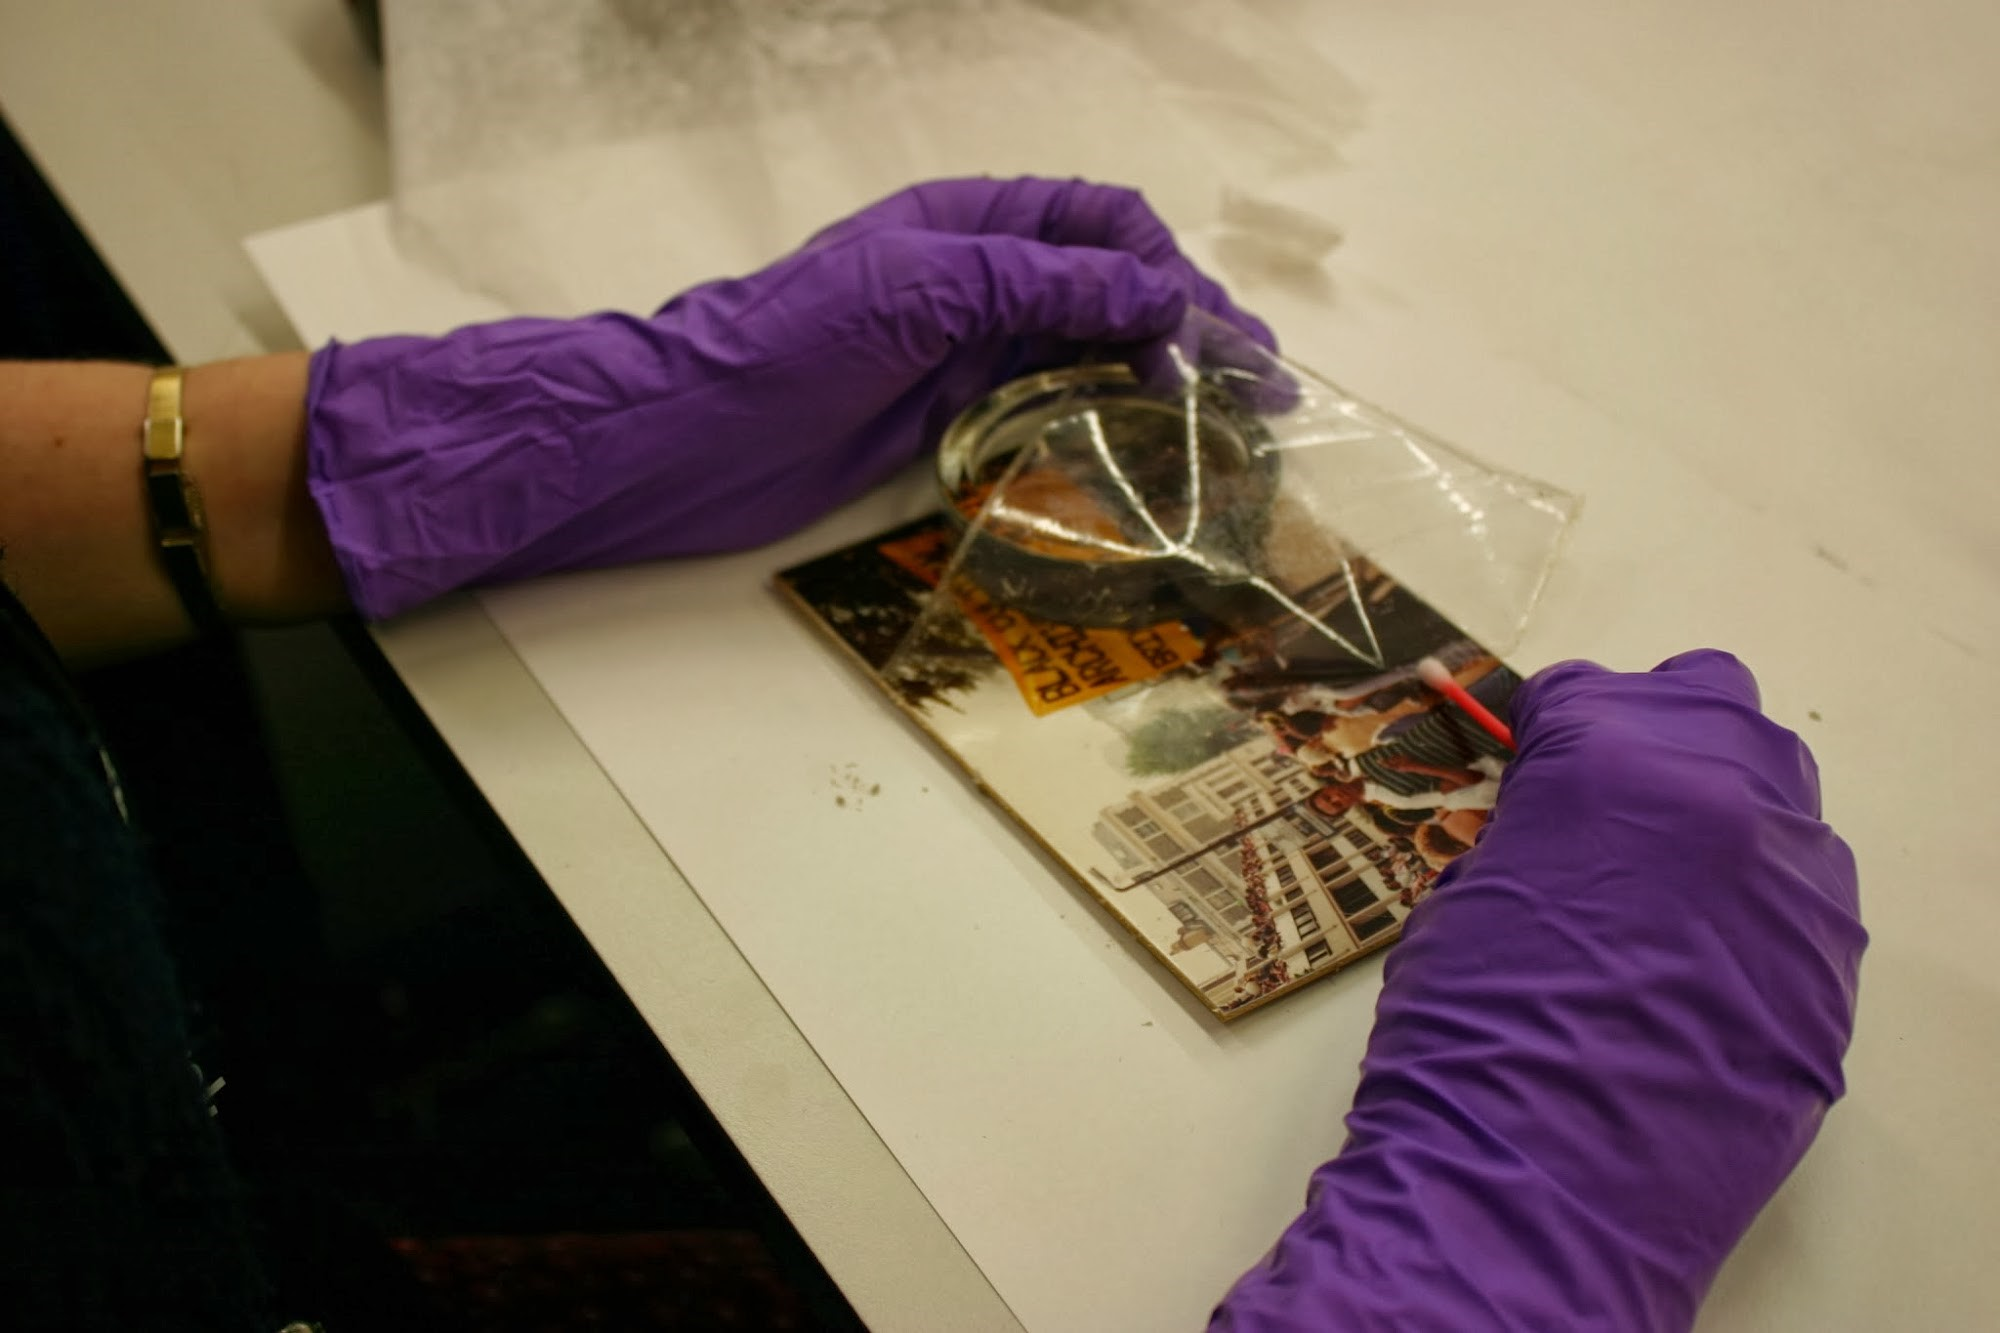 Using IMS and a cotton swab to gently peel the laminate carrier from the surface of the photographs.